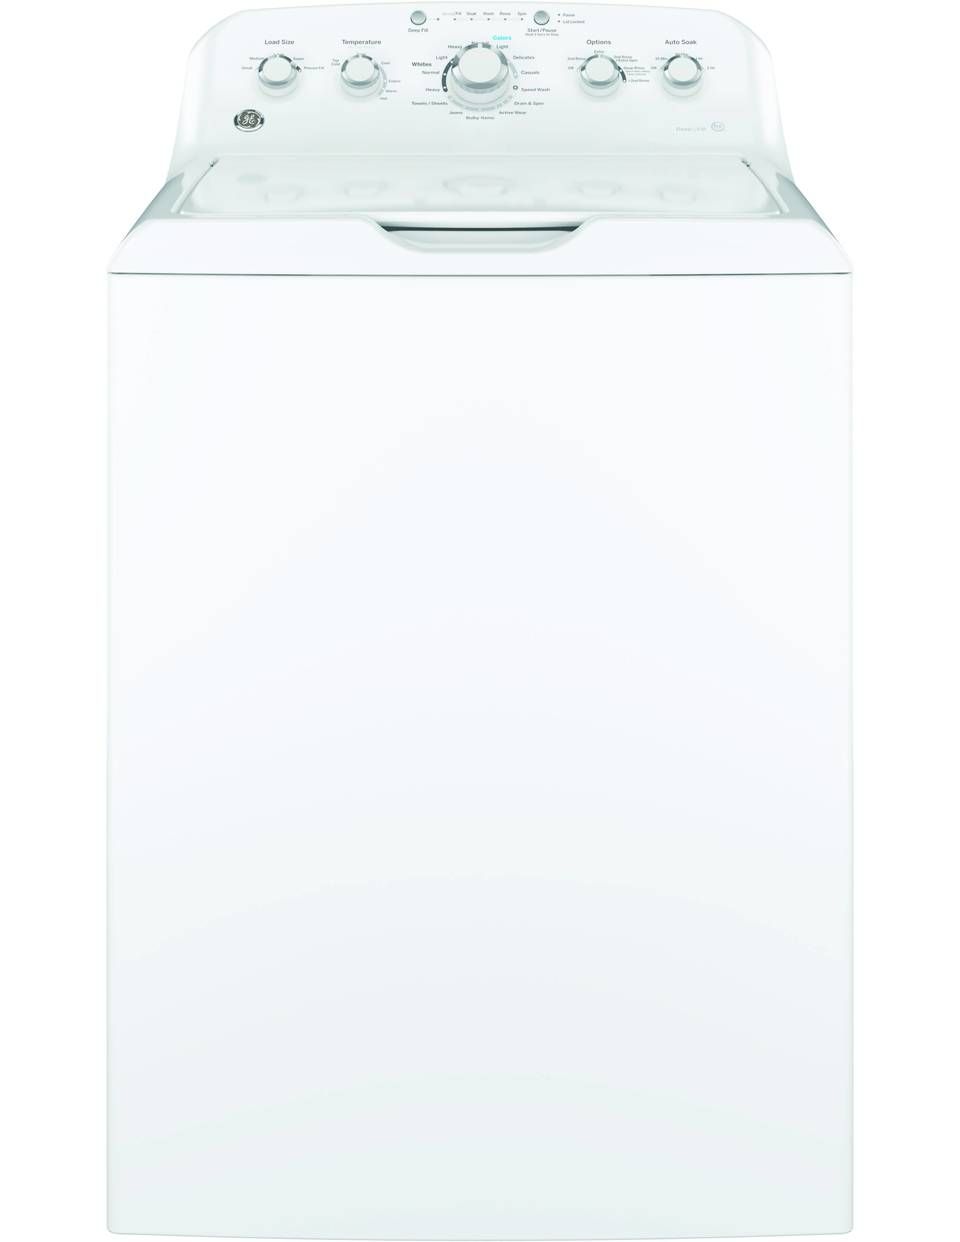 The best top load washer on the market - Ge 4 2 Cu Ft High Efficiency Top Load Washer White